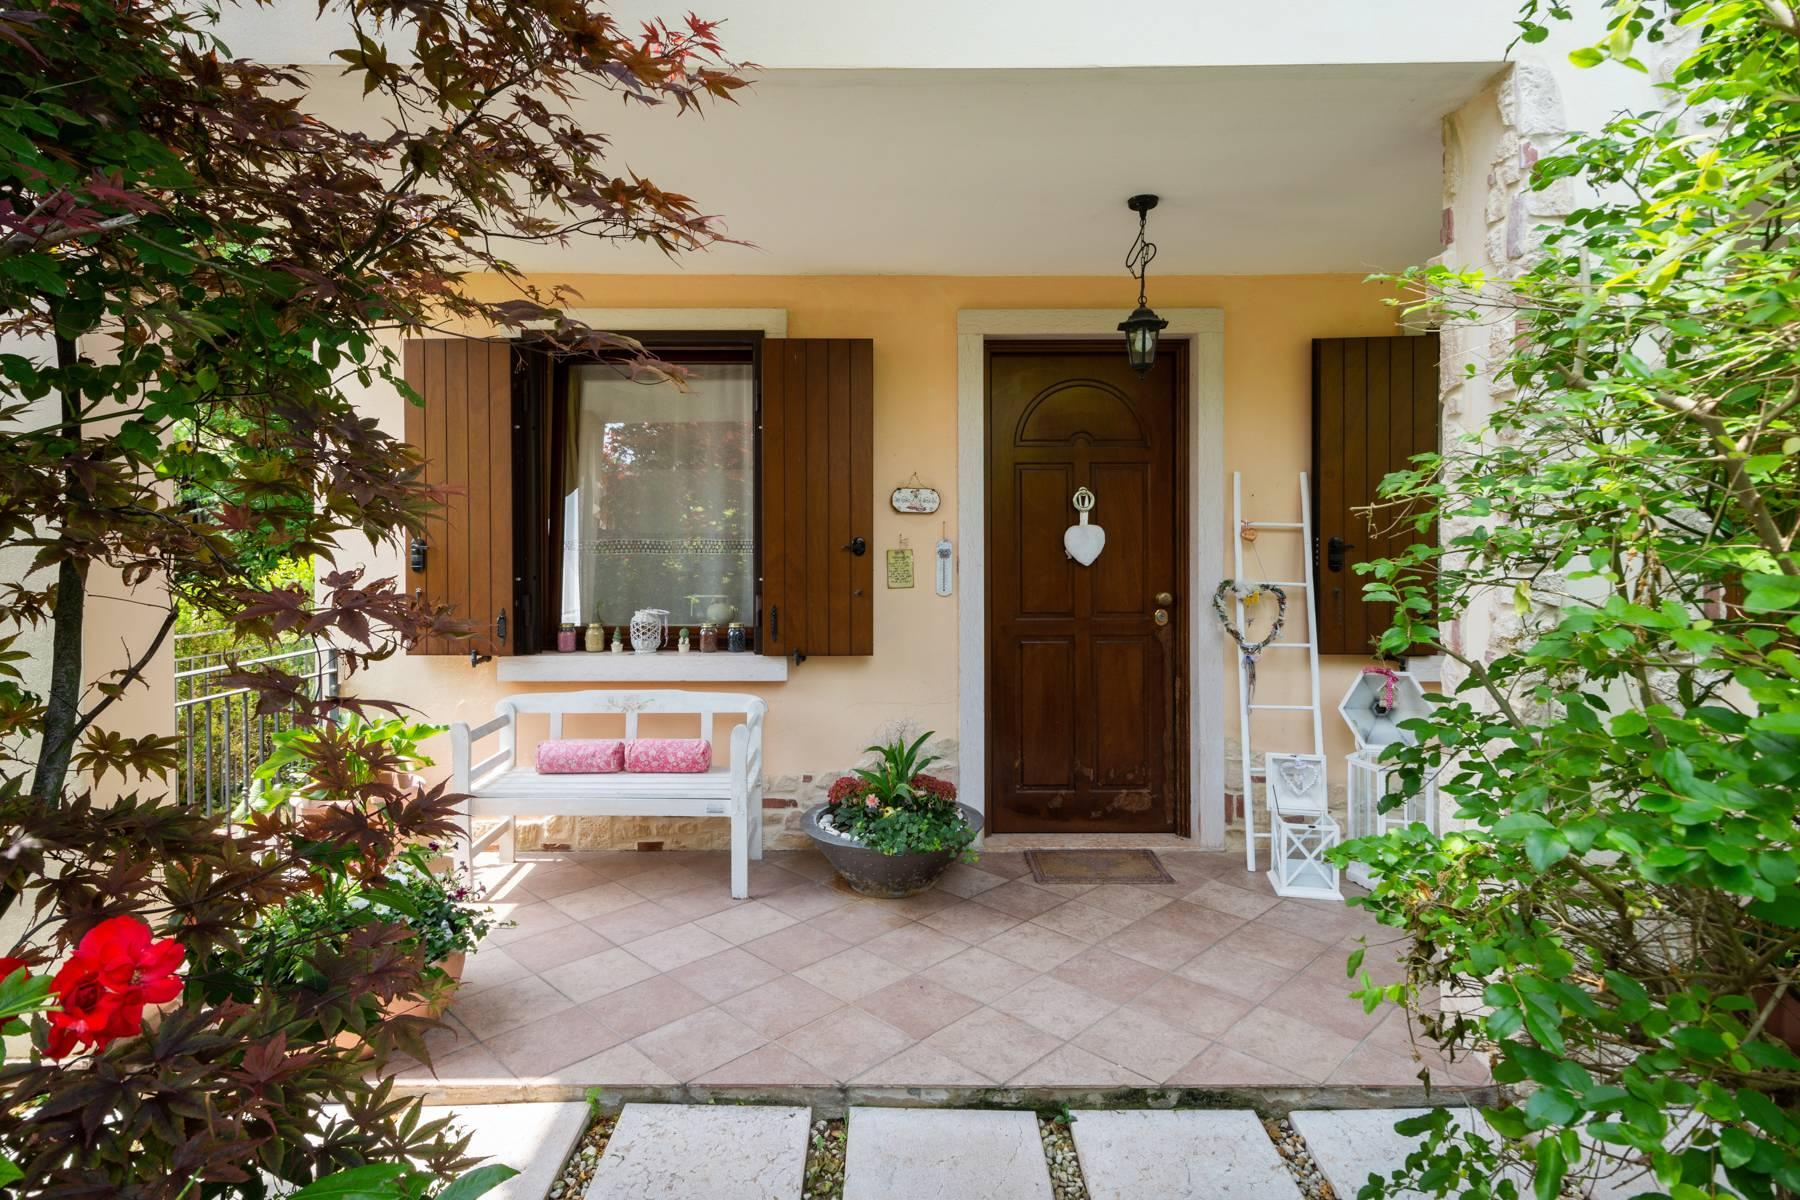 Independent villa with wide garden, just a few steps from the Lake - 3